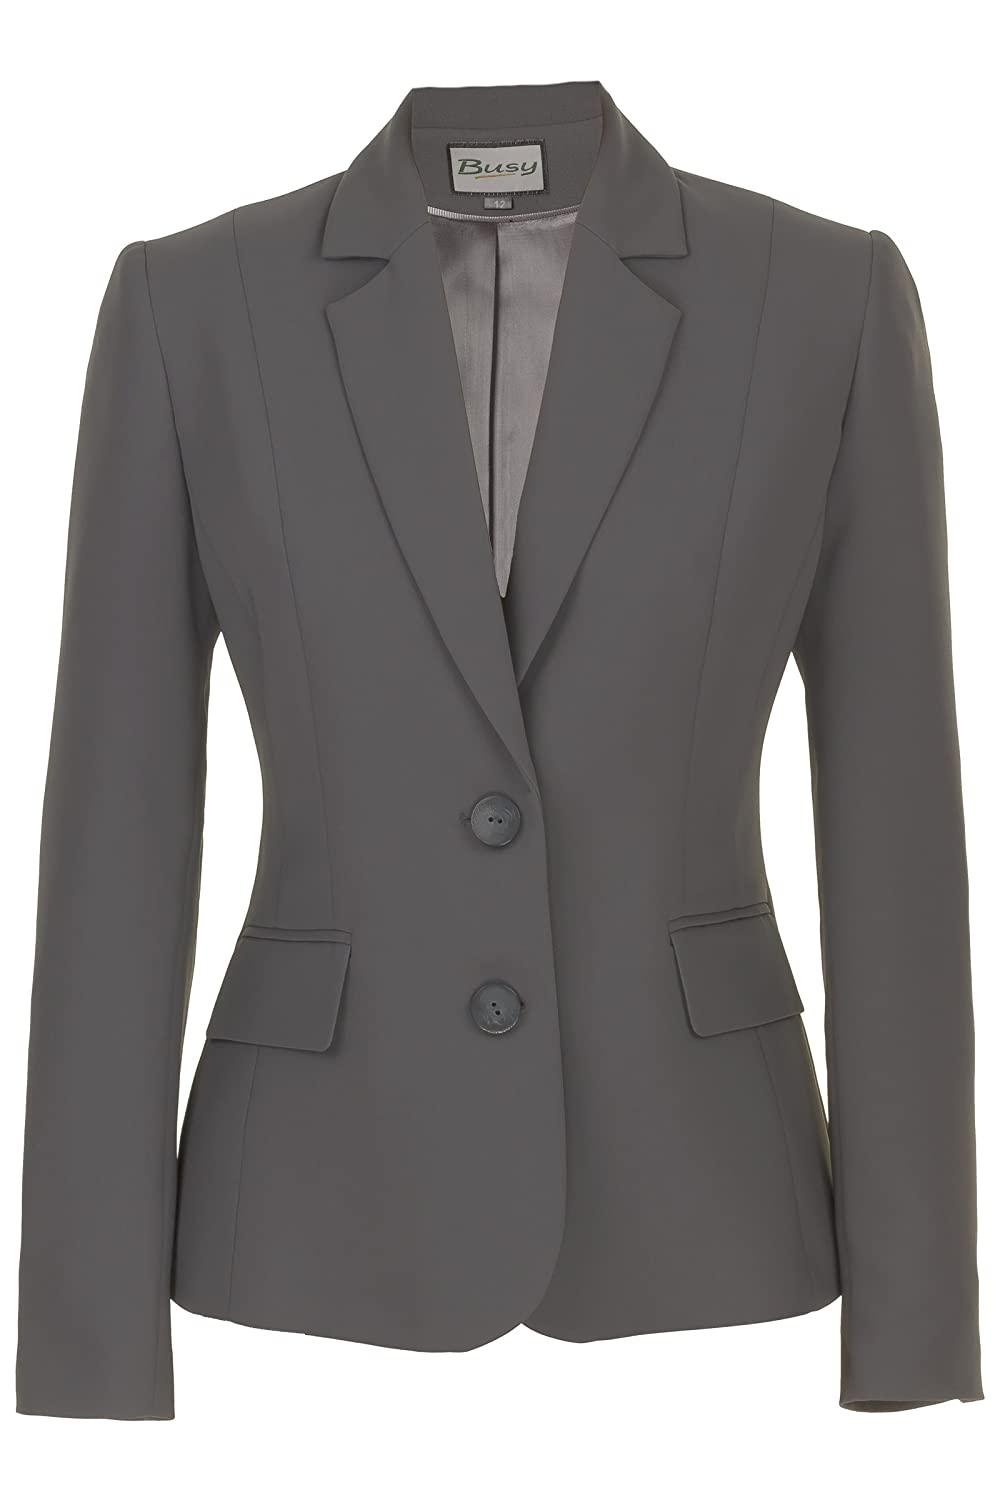 Busy Clothing Women Suit Jacket Grey Amazon Co Uk Clothing